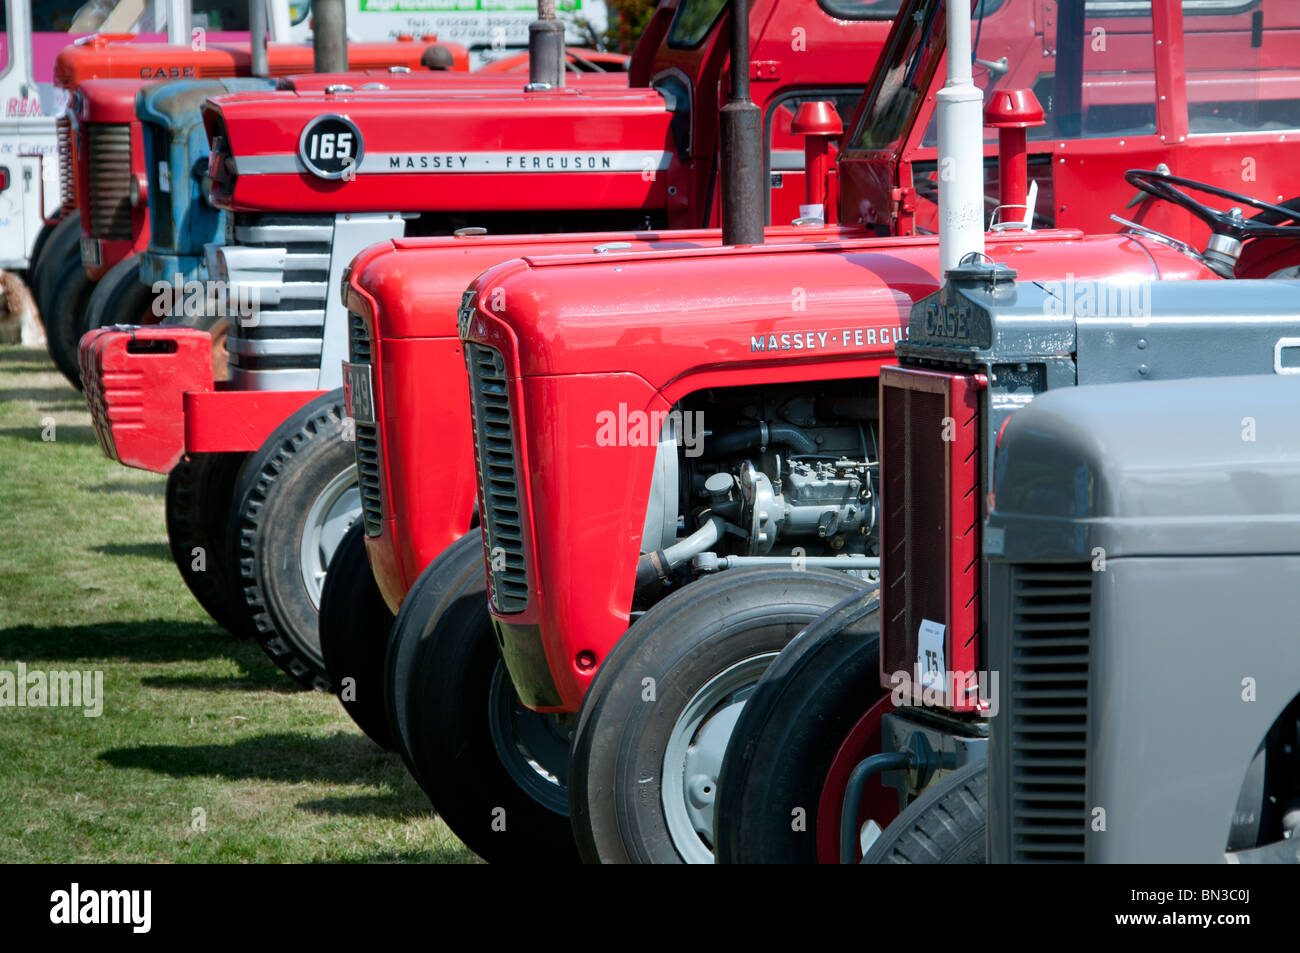 Vintage tractor rally at Paxton House - Stock Image